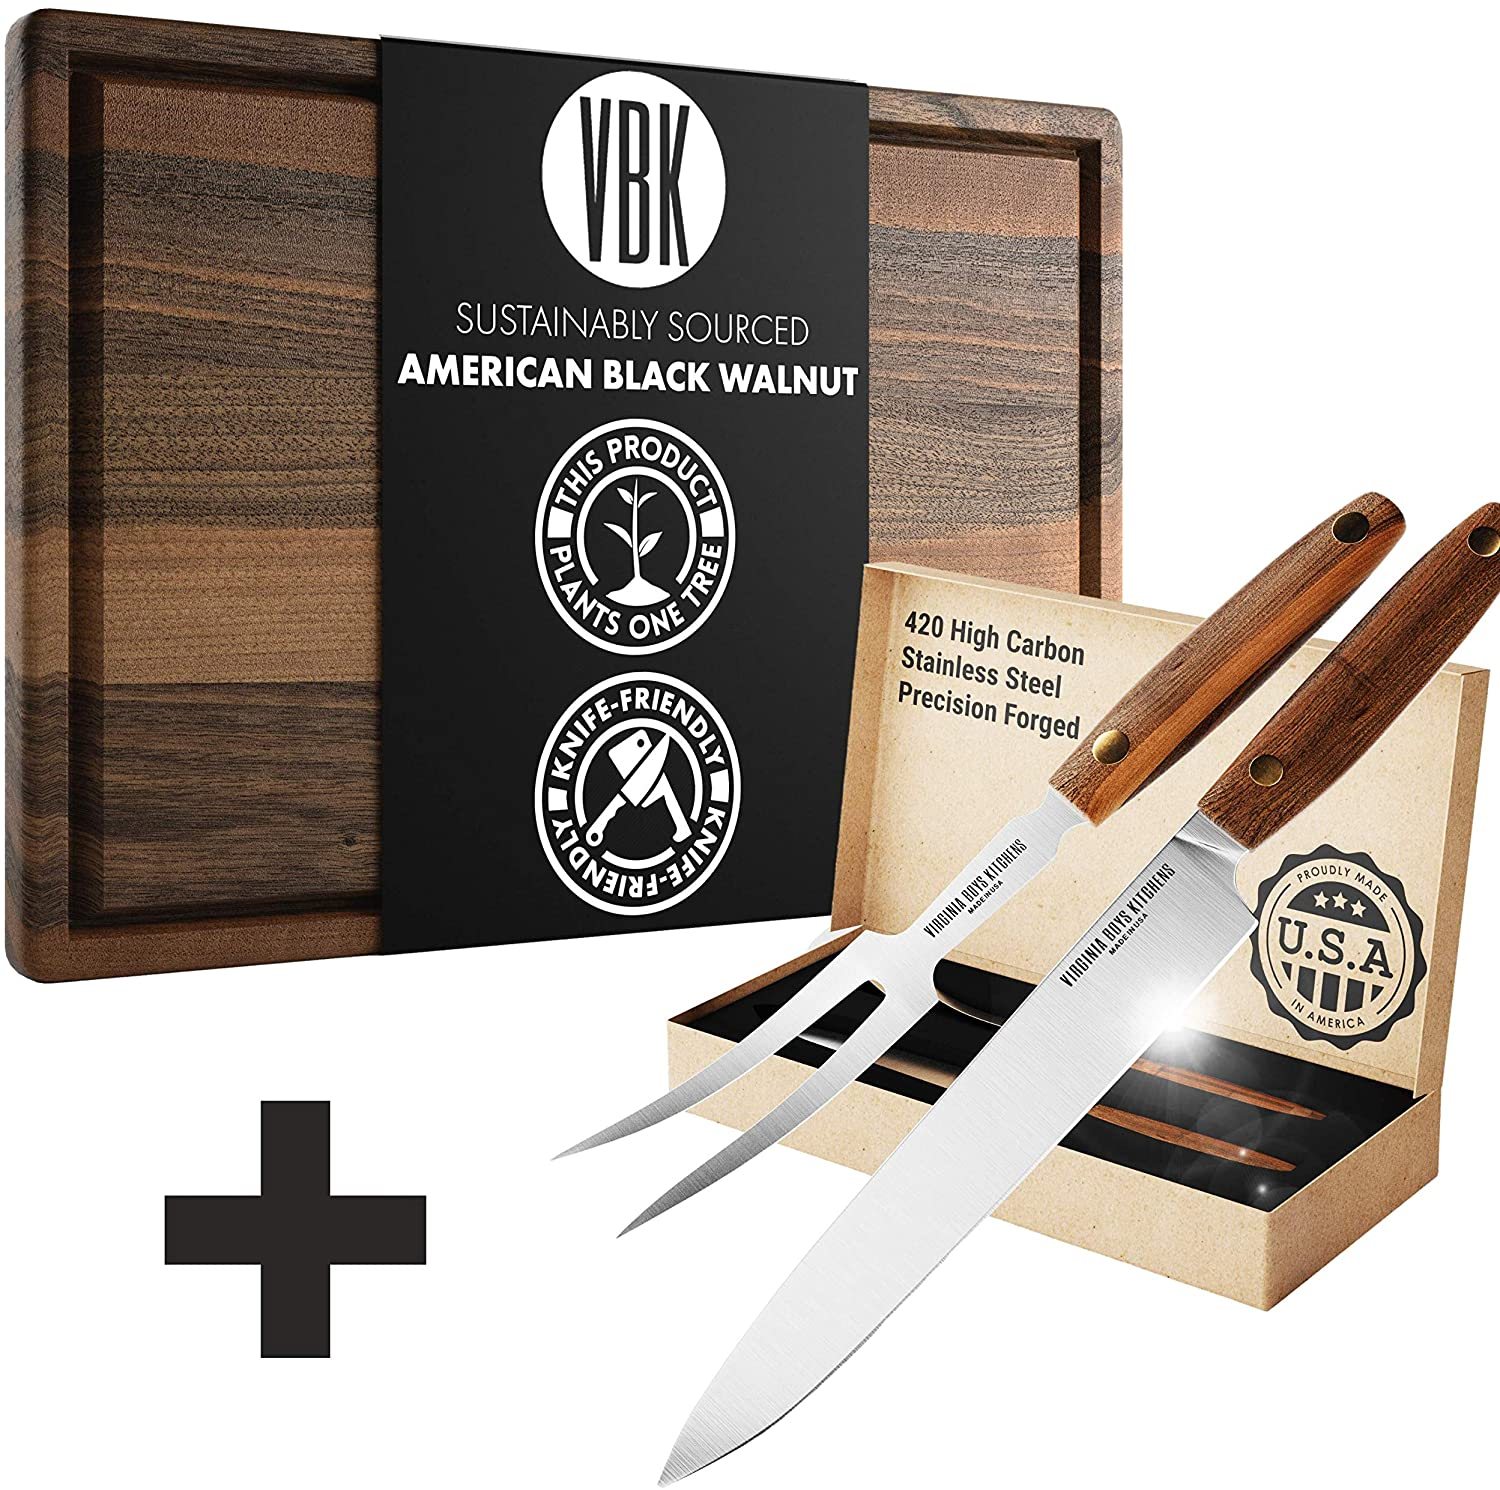 Meat Carving Set - 18x24 inch Extra Large Wooden Cutting Board + 2 Piece Carving Knife and Fork Set - MADE IN USA